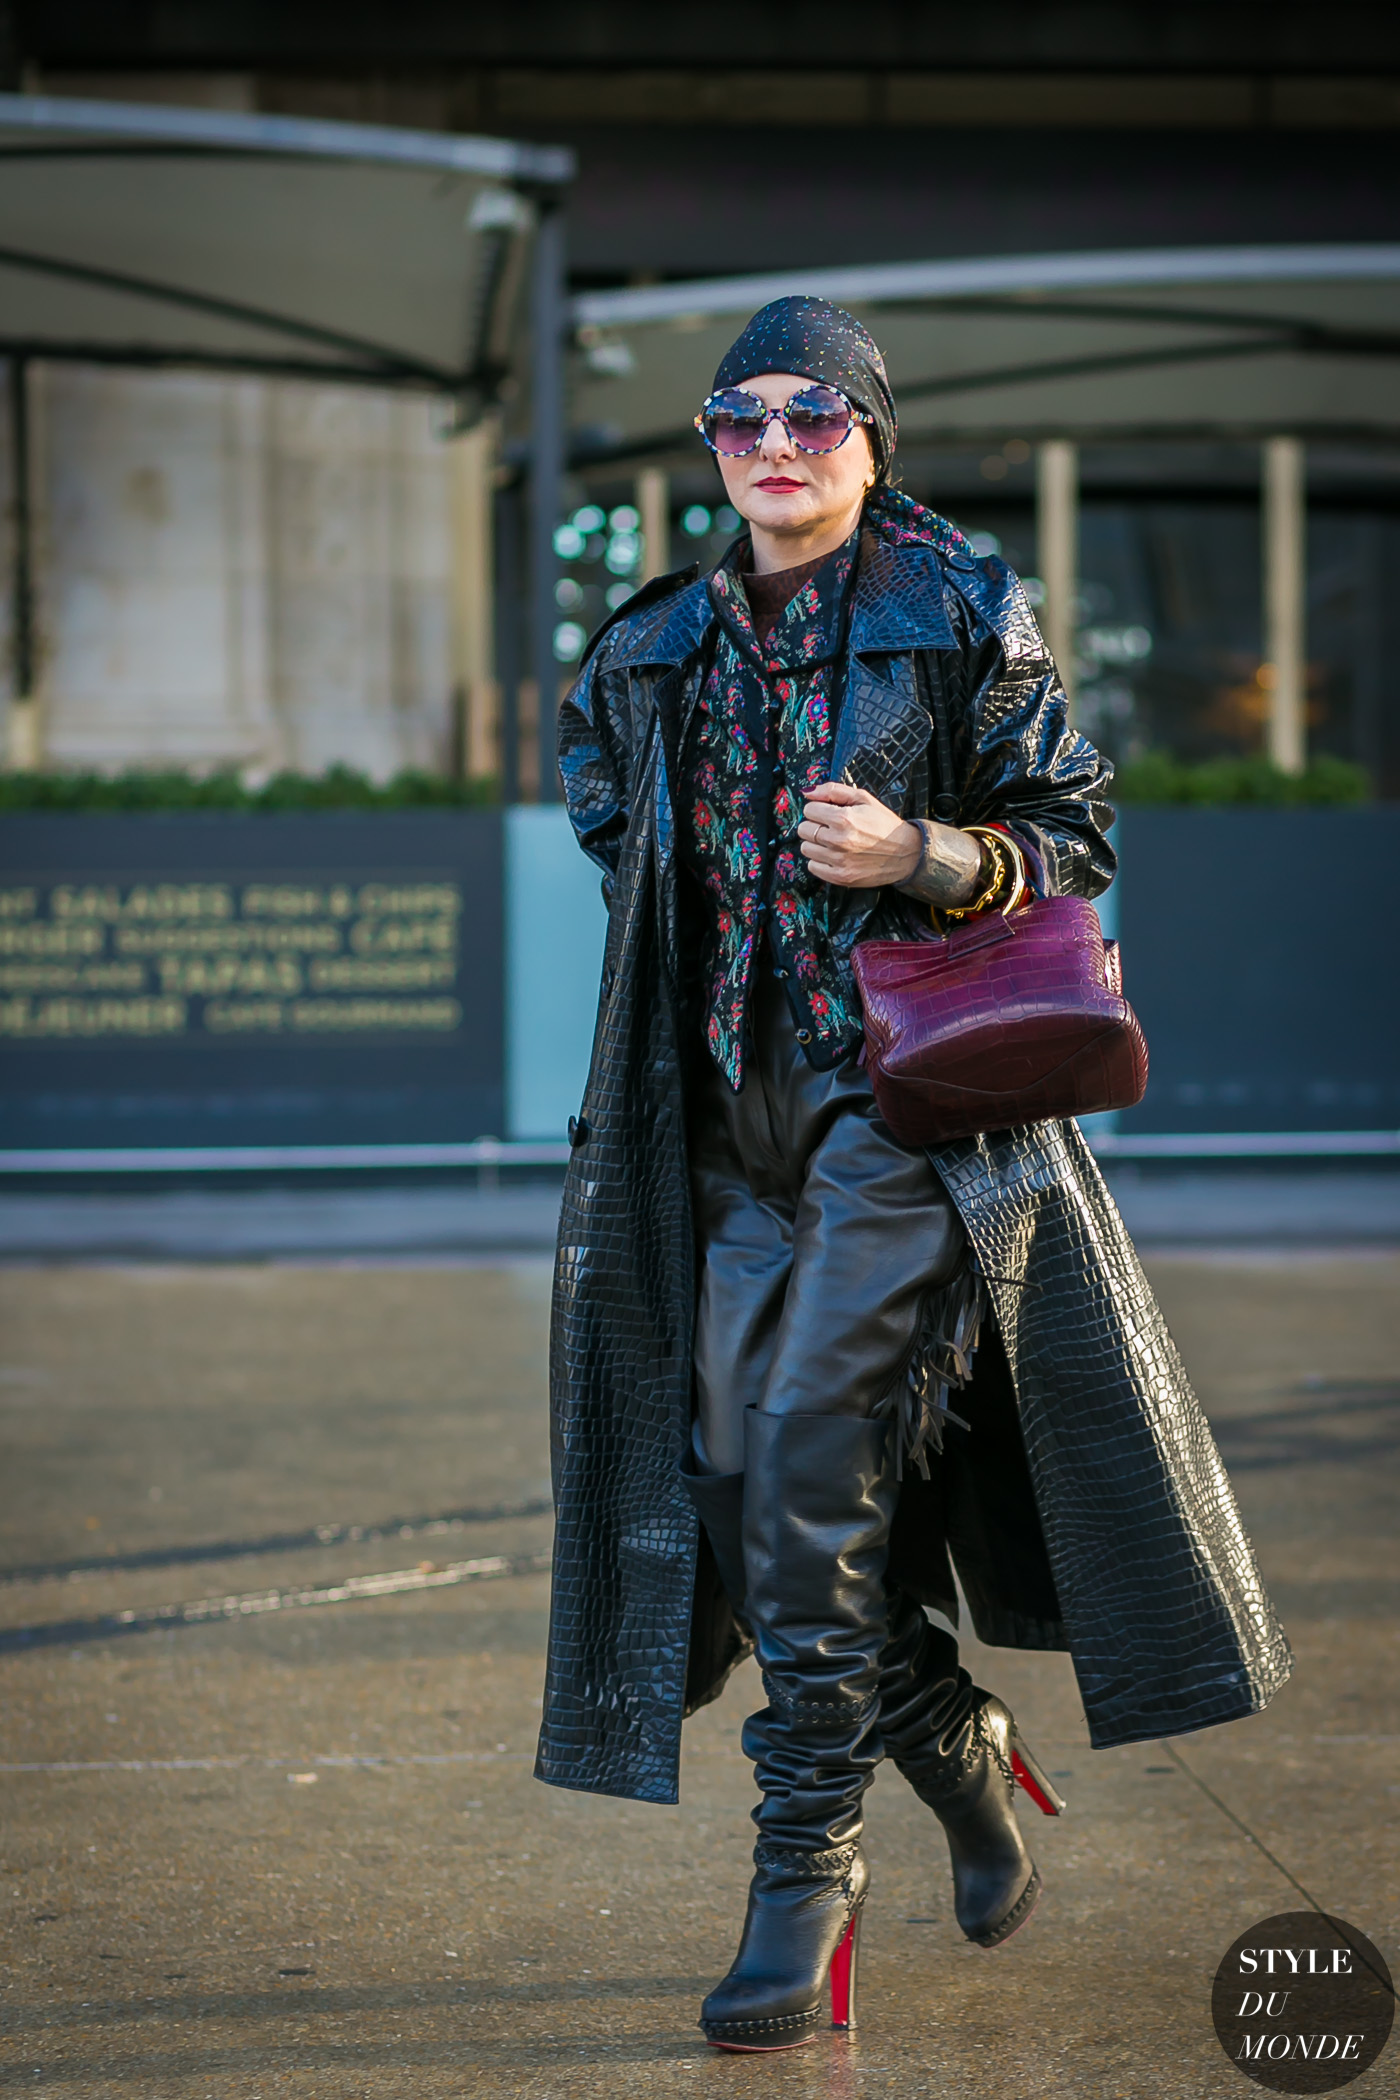 Catherine Baba by STYLEDUMONDE Street Style Fashion Photography